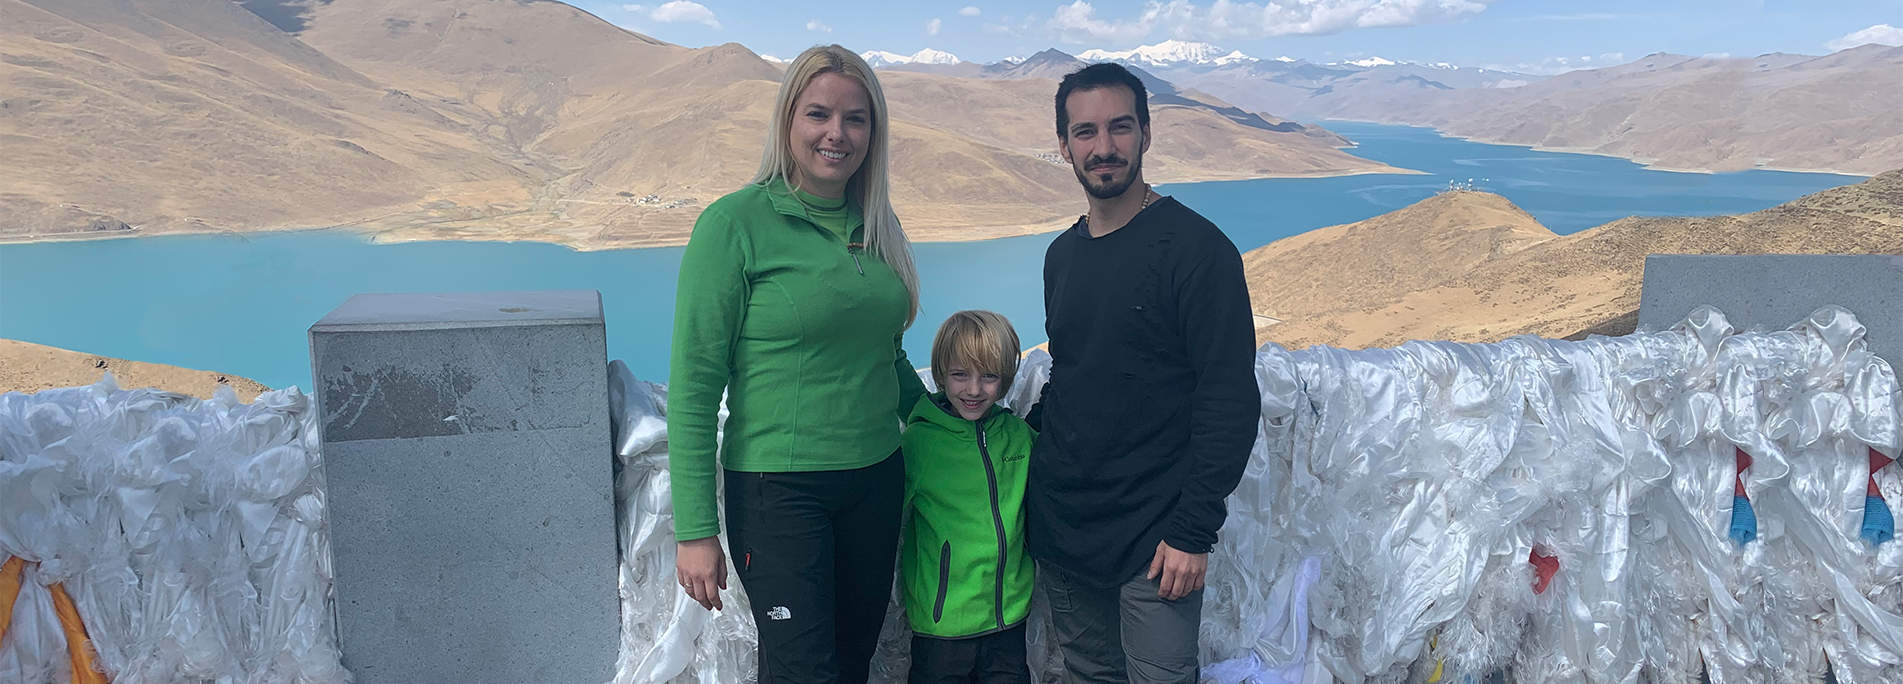 Family Tibet tour with kids is not a fantastic experience, but an elaborate plan for the family.